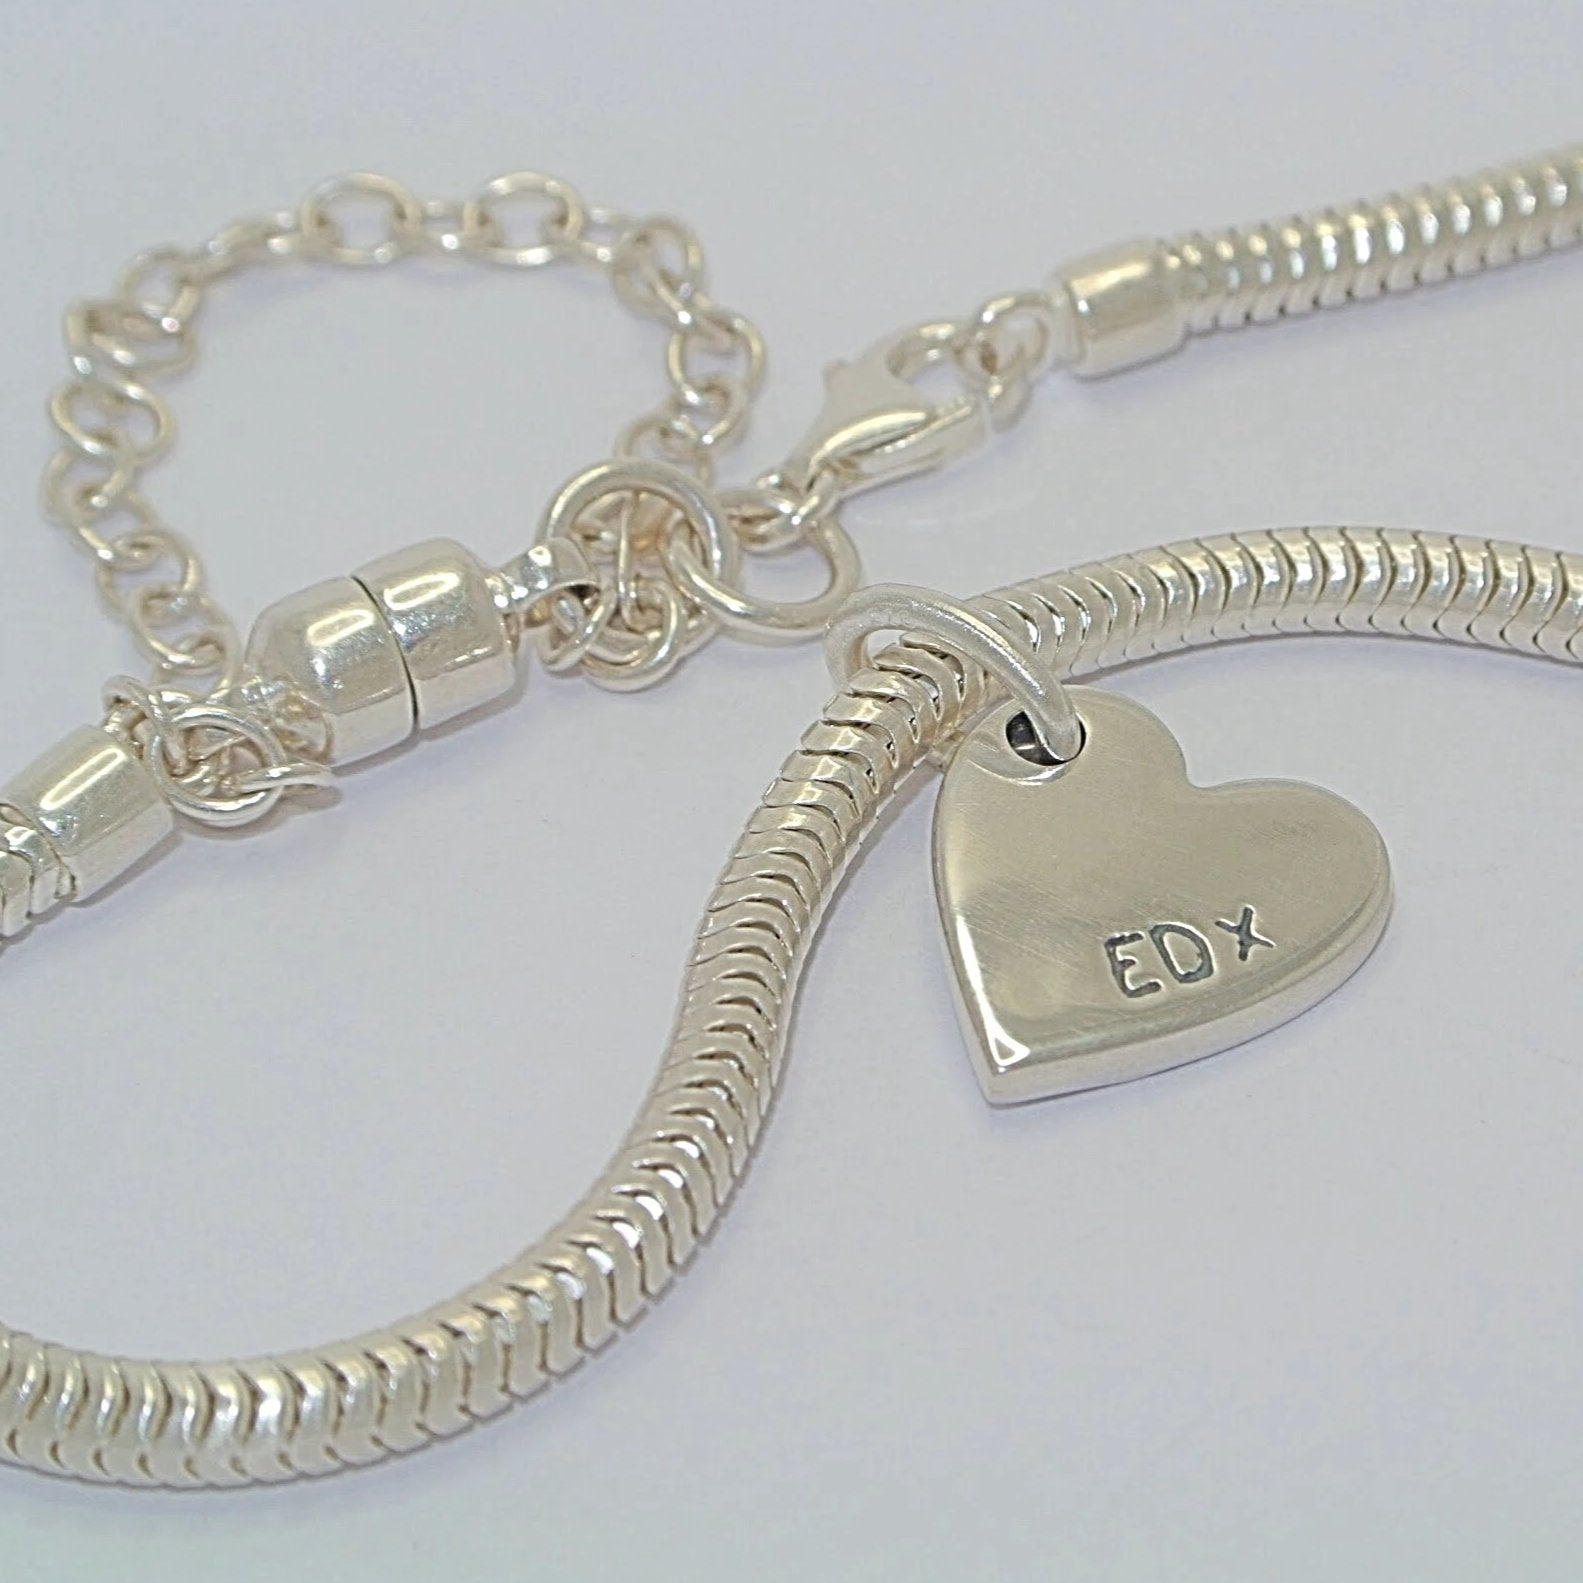 Double-Sided Bracelet Charm Sterling Silver Fingerprint Jewellery